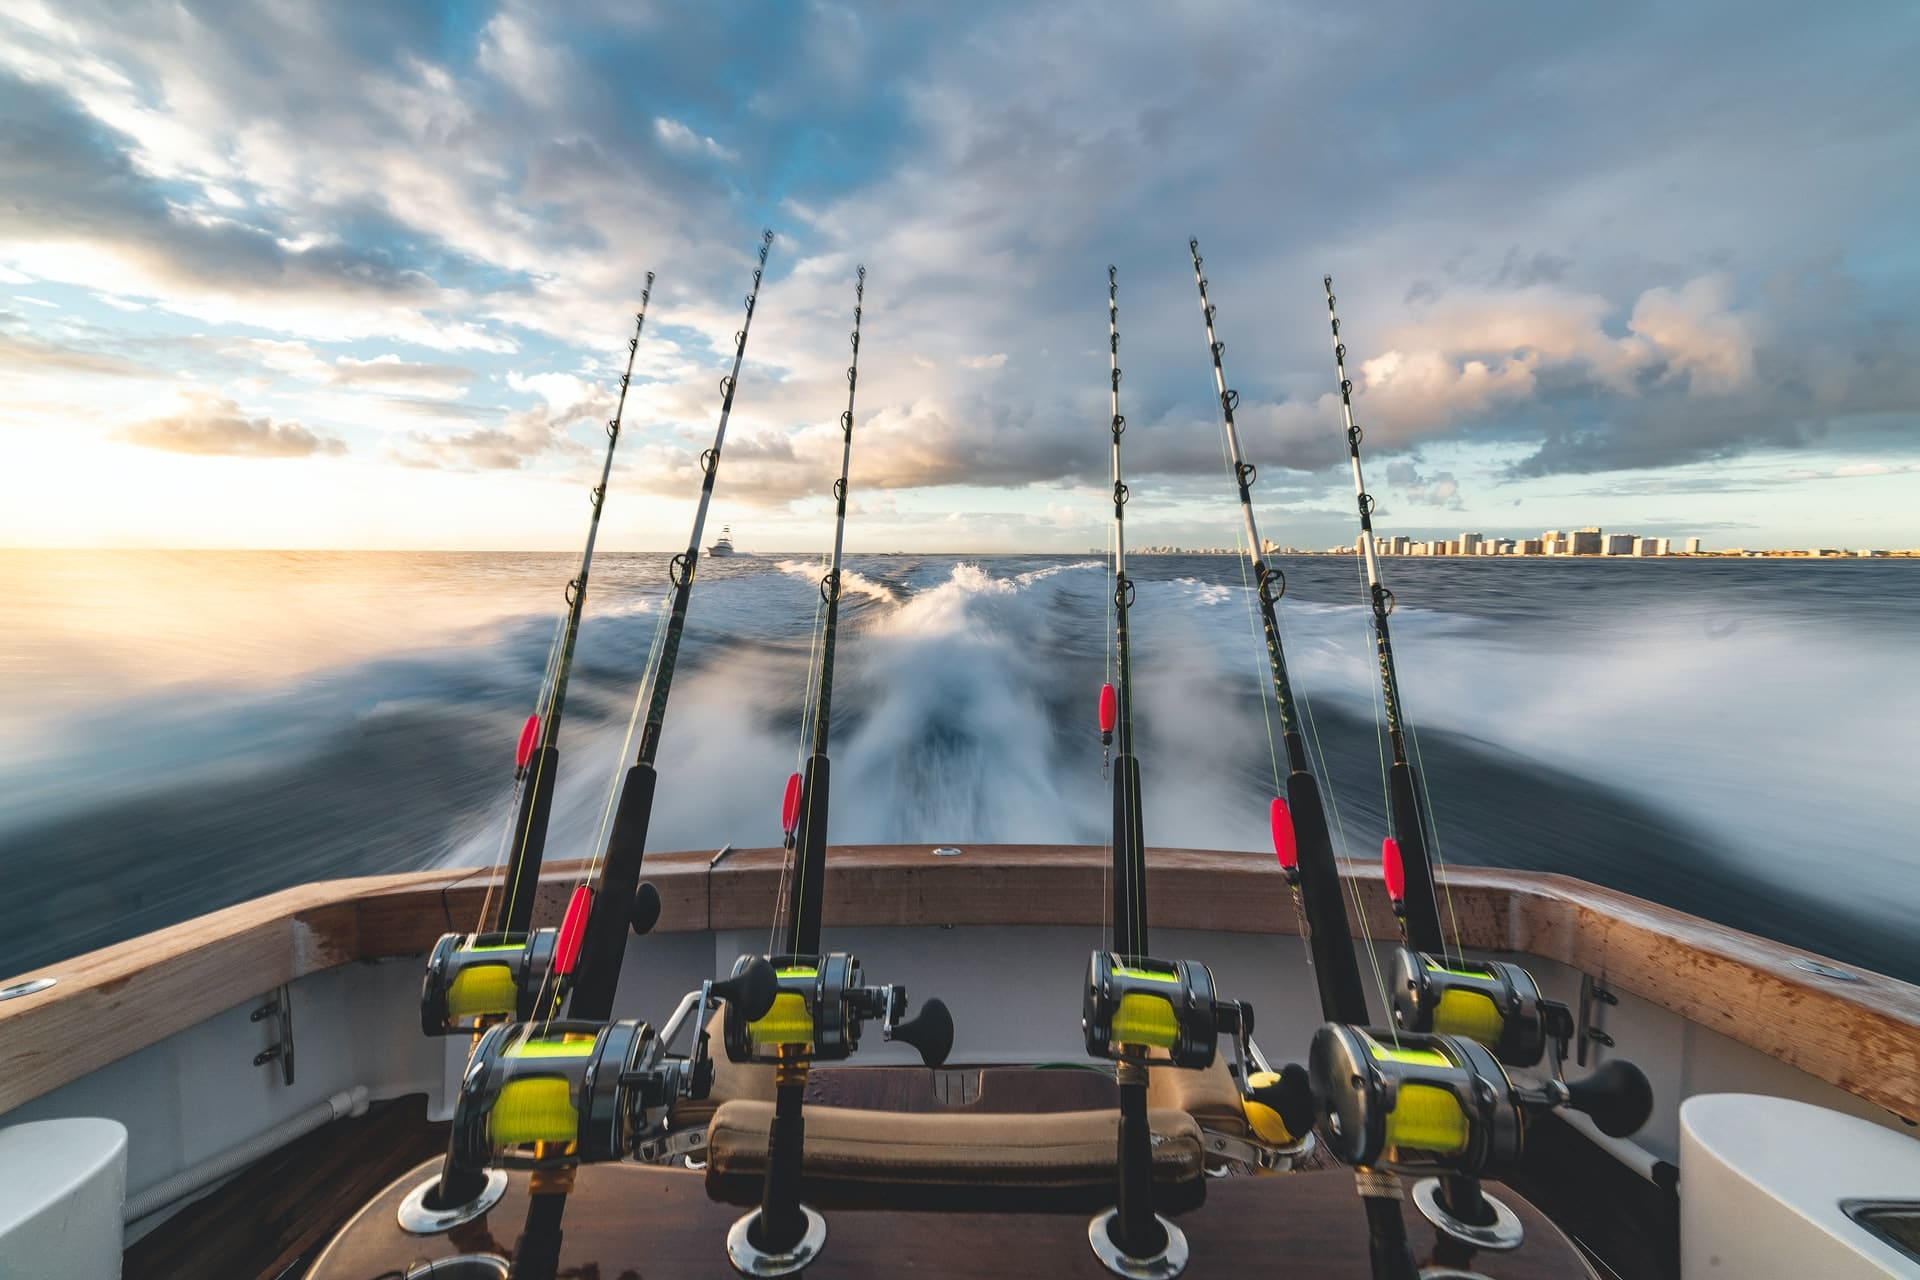 How To Plan A Simple But Exciting Fishing Staycation